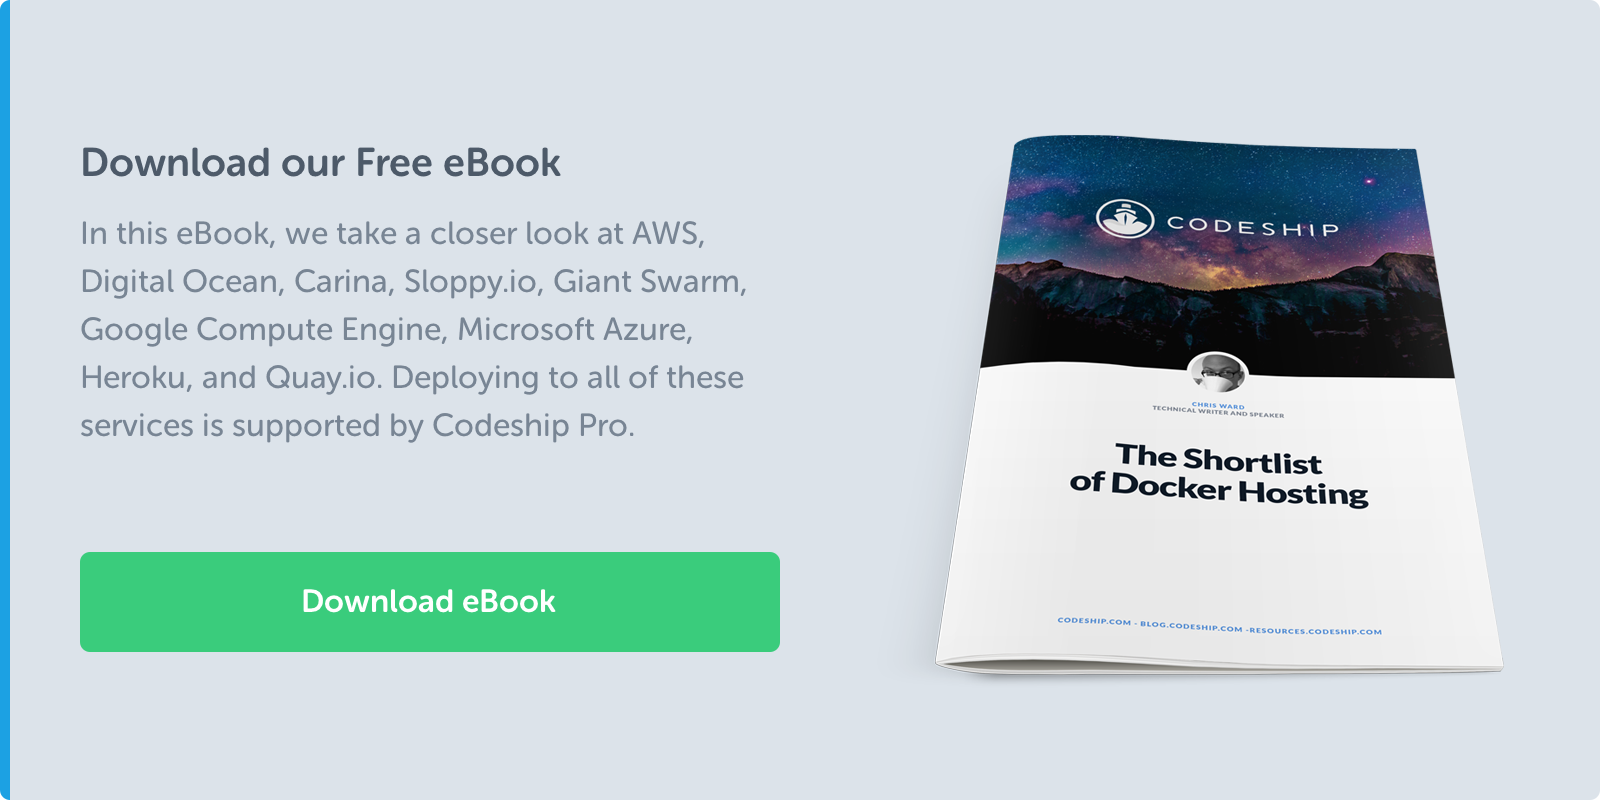 eBook_shortlist_docker_hosting